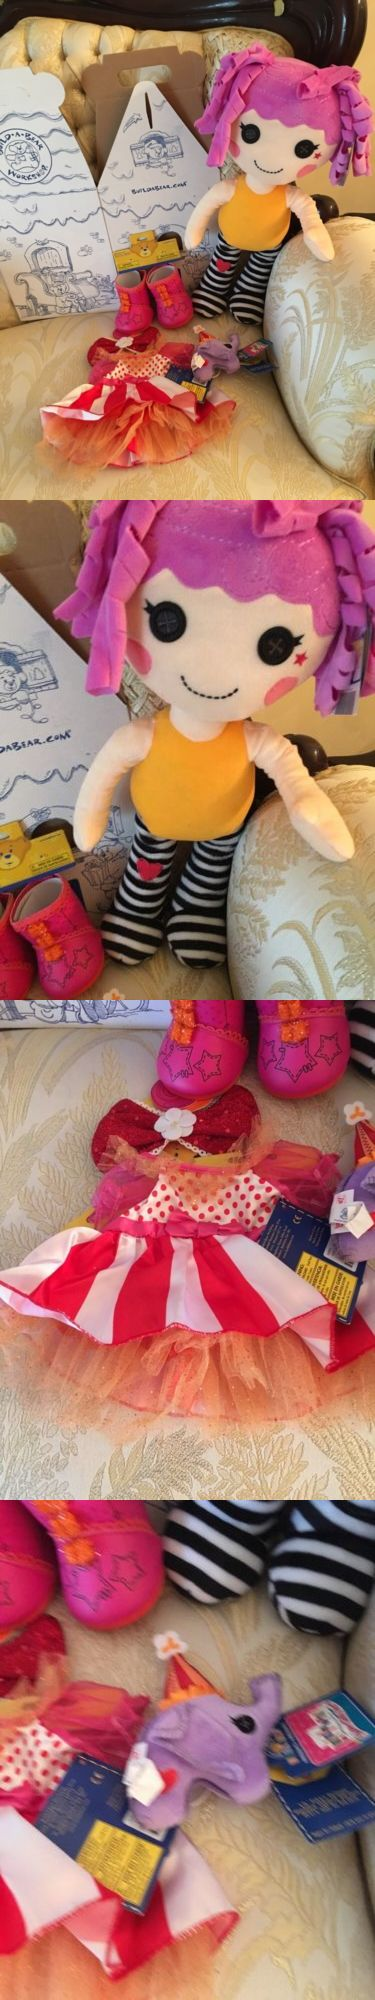 Pillow Pals 1633: Build A Bear Lalaloopsy Peanut Big Top Stuffed Outfit Shoes Pet Bundle New -> BUY IT NOW ONLY: $79.99 on eBay!